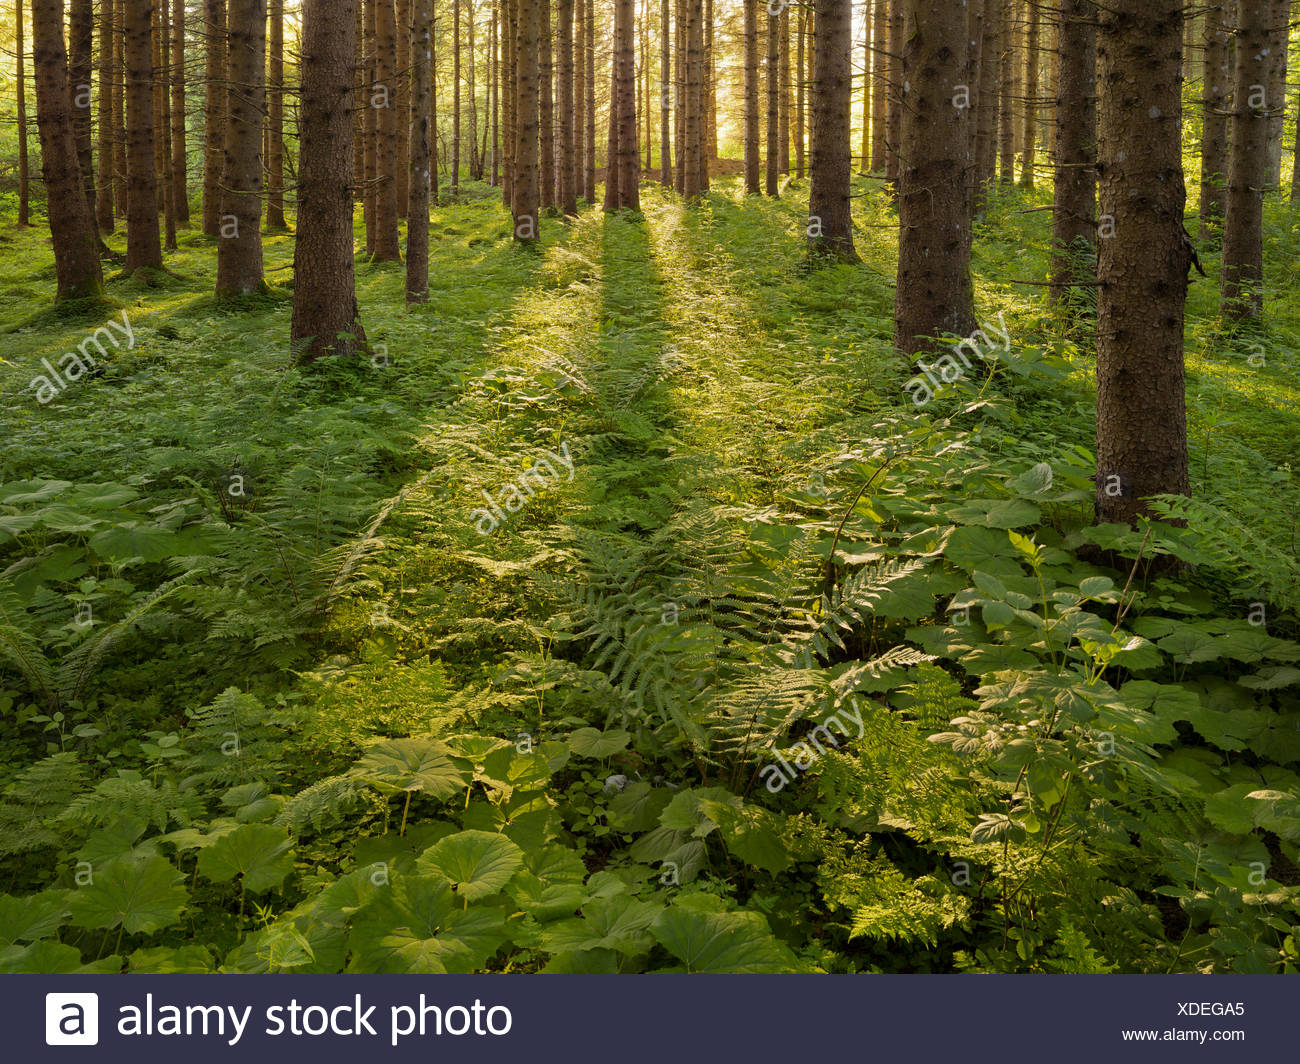 Spruces monoculture in the Ennstal, near Admont, Styria, Austria - Stock Image